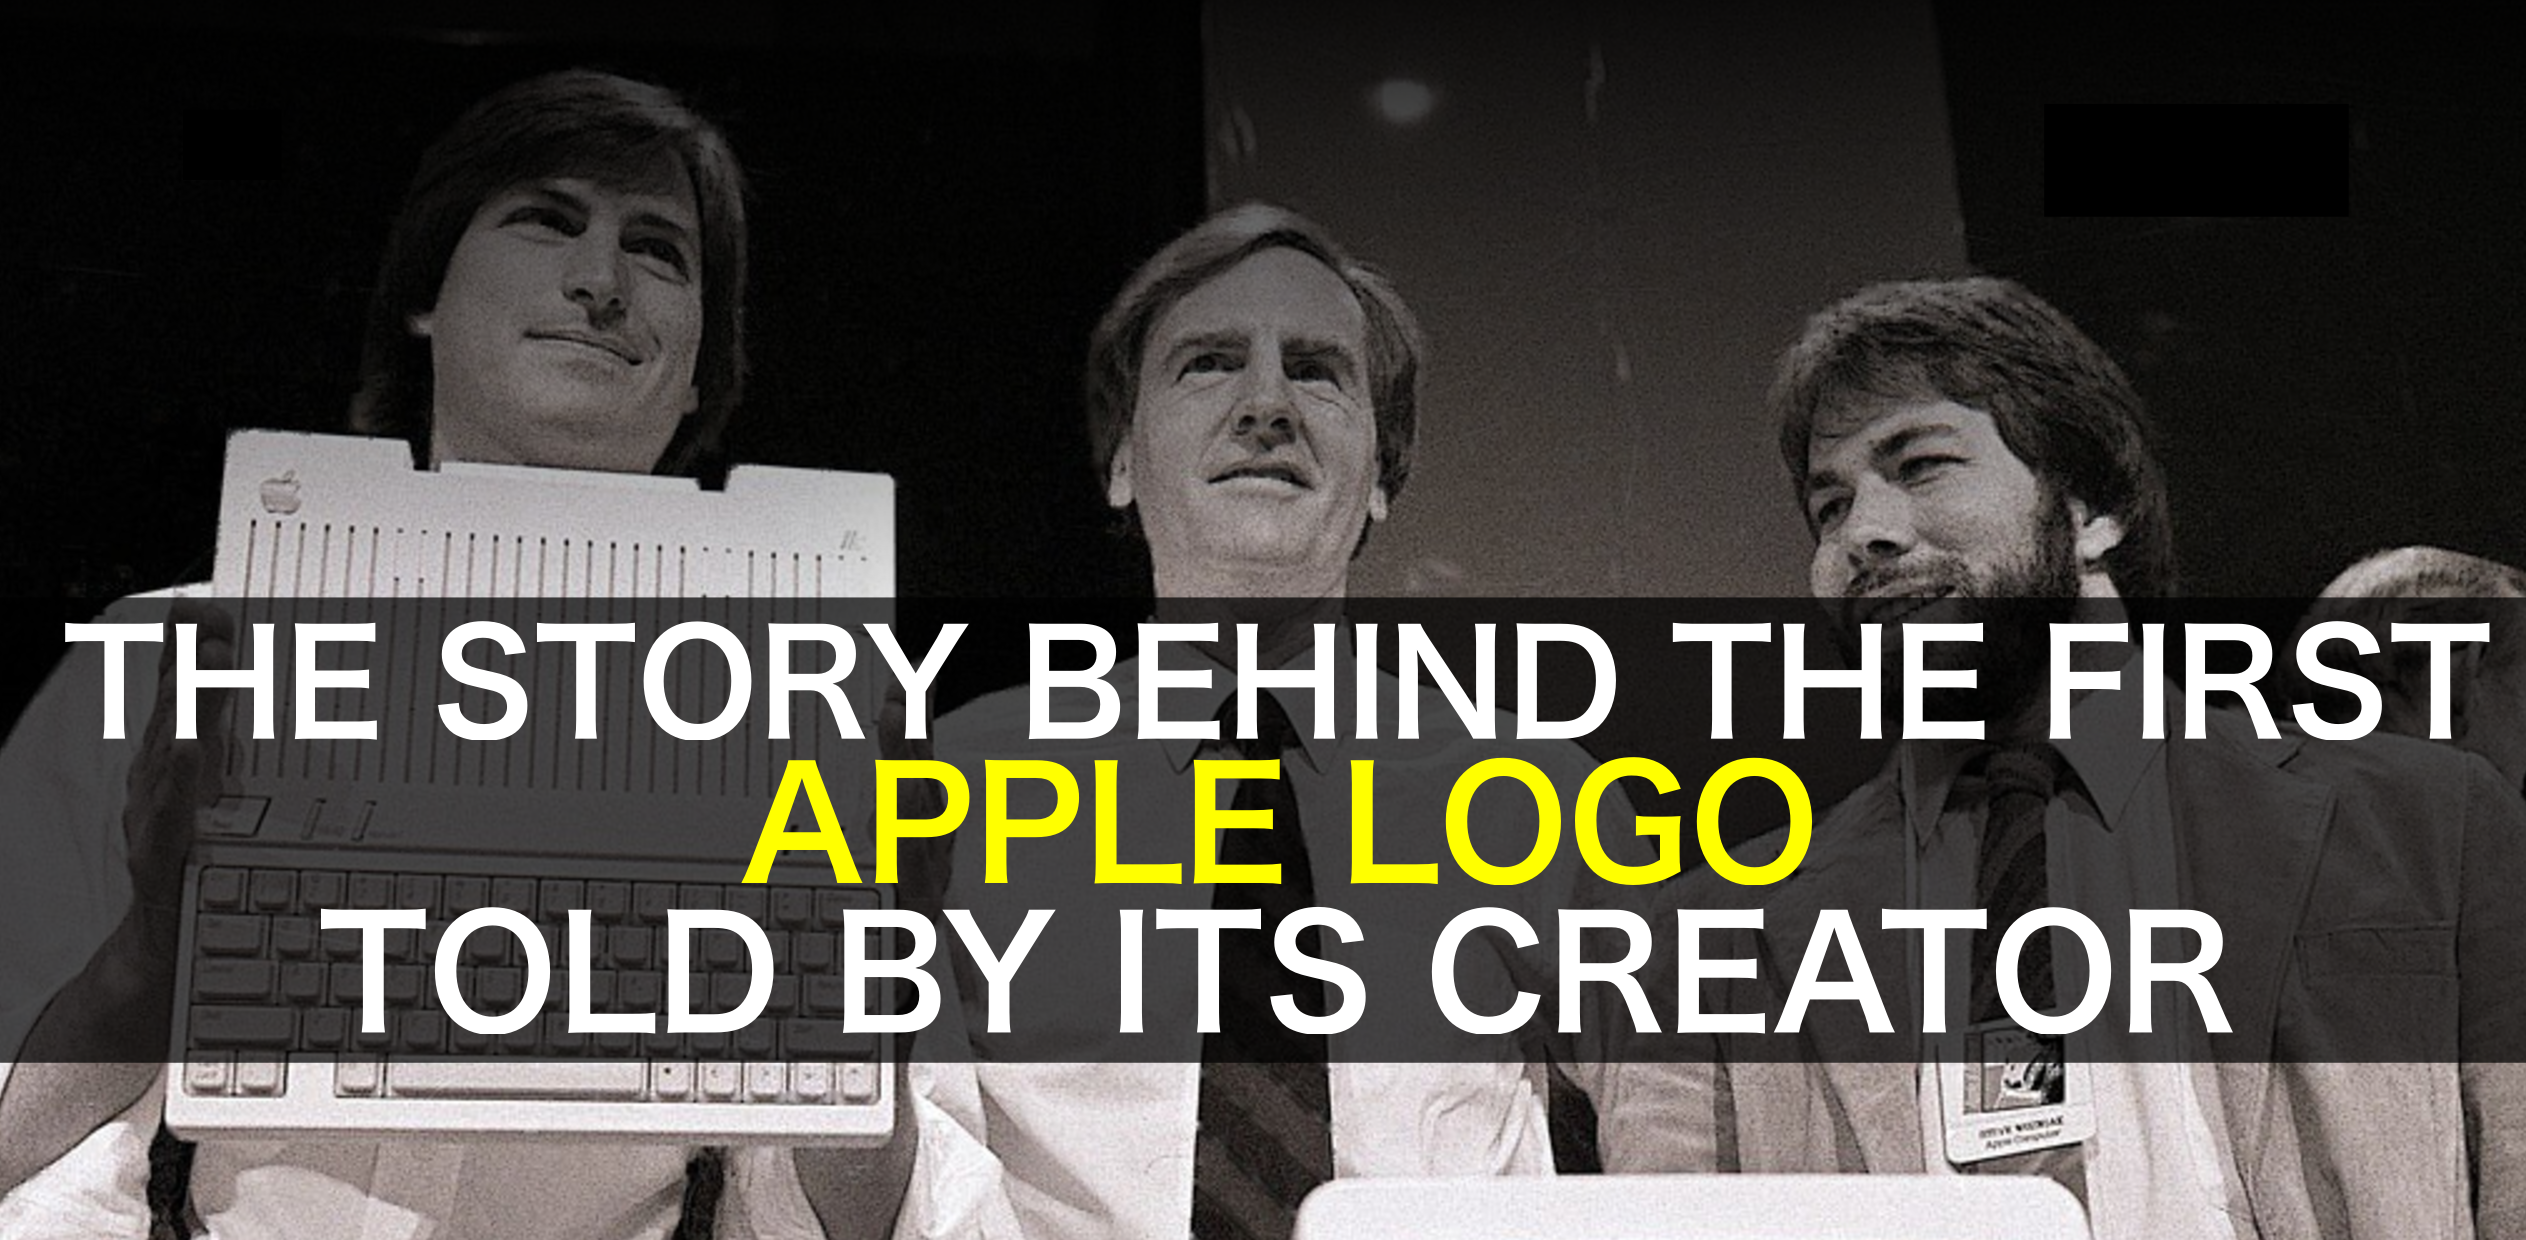 story-behind-first-apple-logo-told-by-its-creator